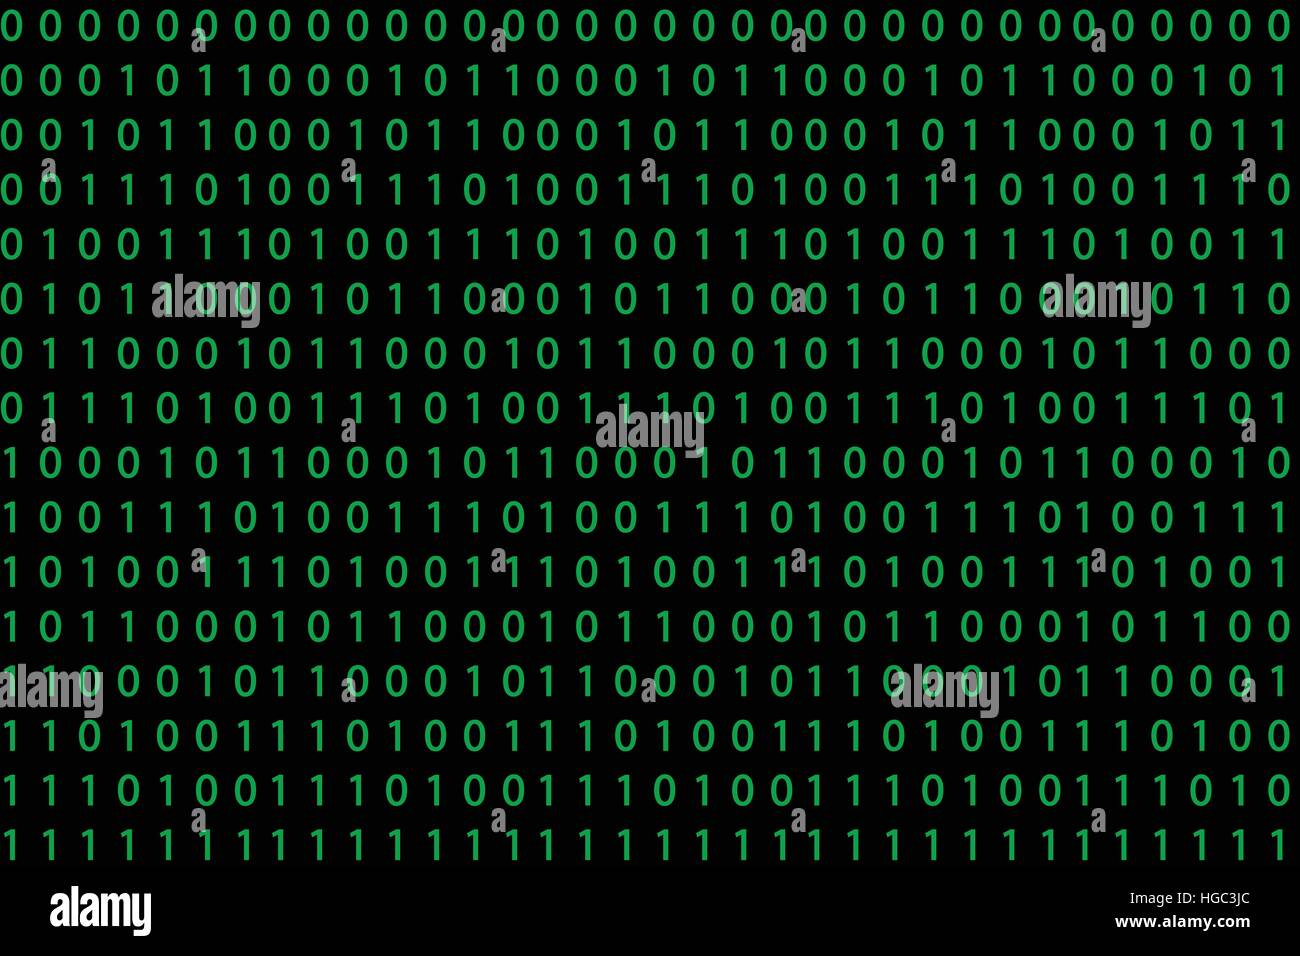 Seamless pattern with binary code - Stock Image